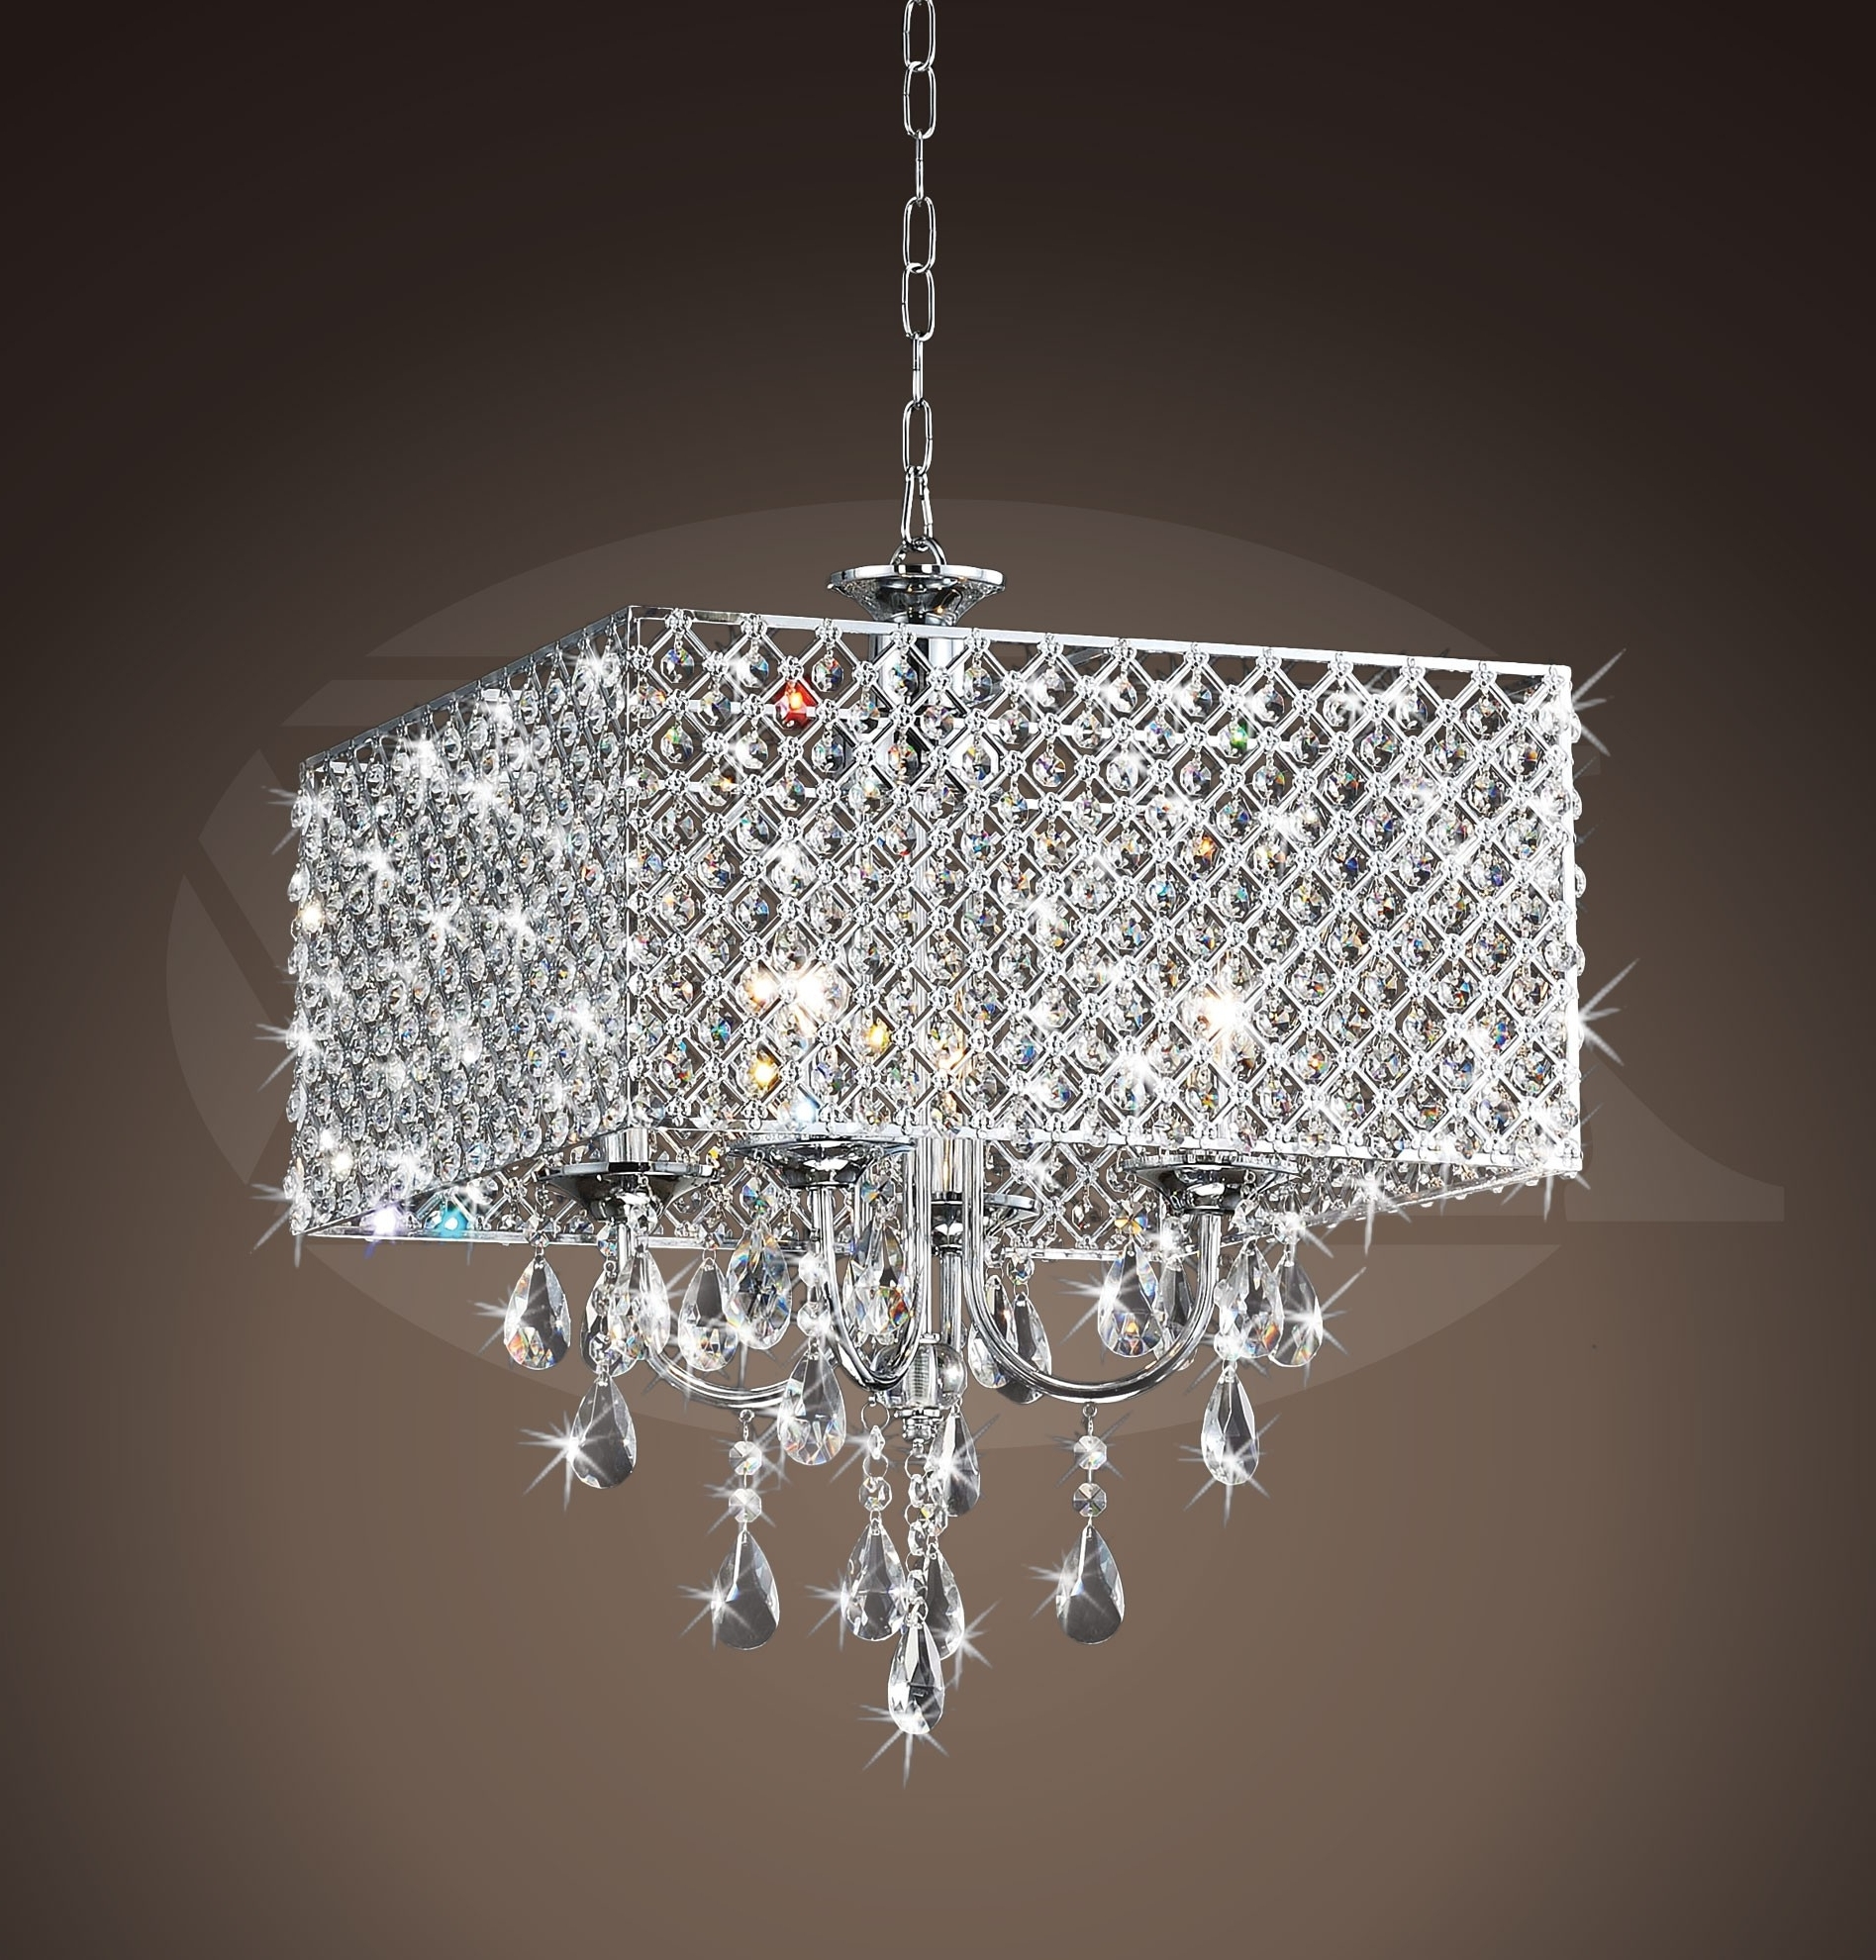 "Current Rosemary Elegant Crystal Chrome 4 Light Square Chandelier (16""h X 17 Regarding 4 Light Chrome Crystal Chandeliers (View 13 of 20)"